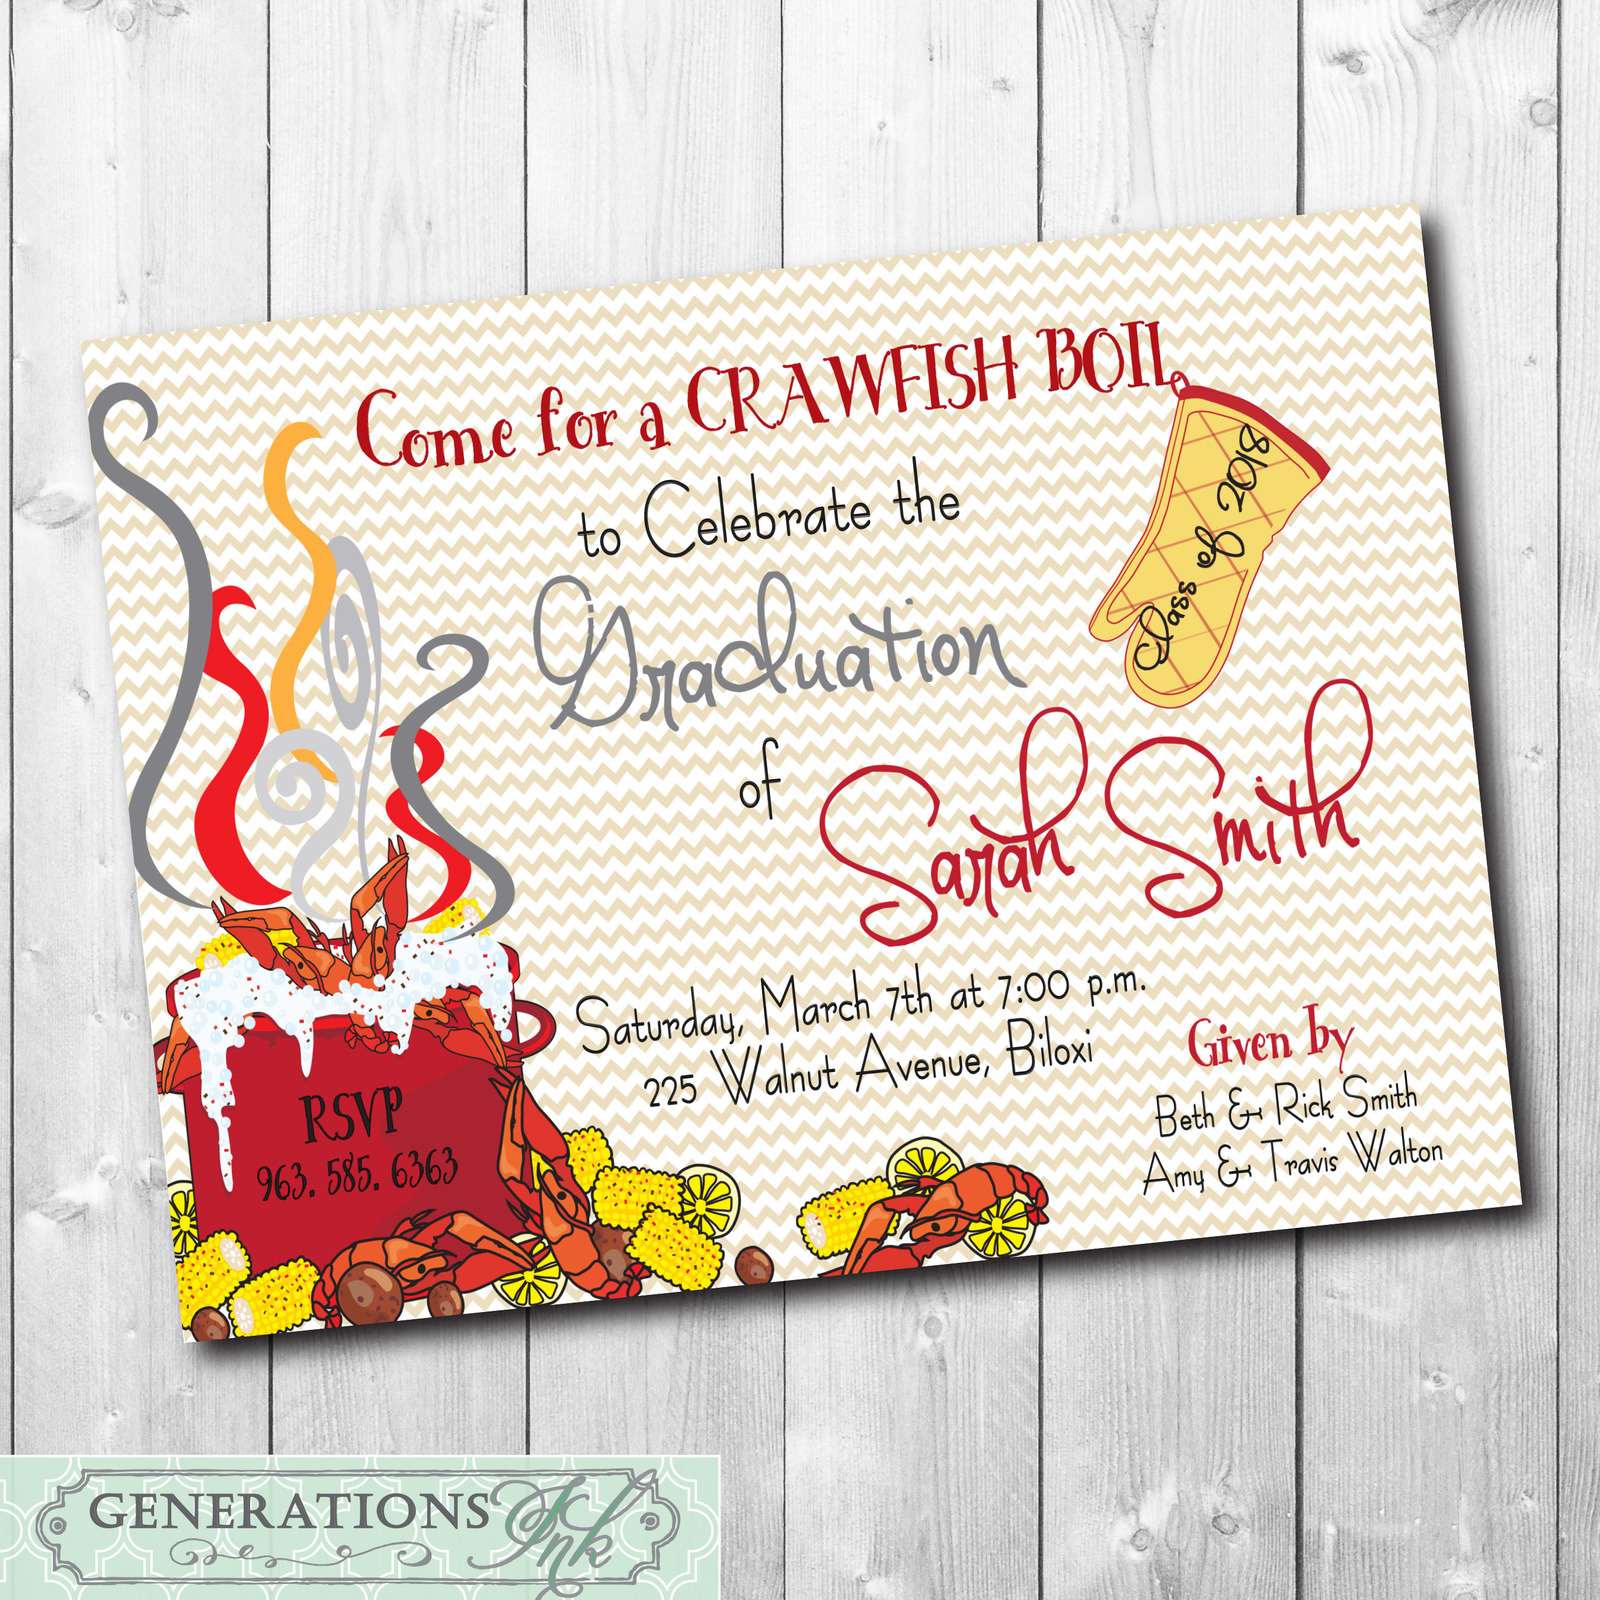 picture about Crawfish Boil Invitations Free Printable referred to as Crawfish Boil Commencement Occasion and 50 identical merchandise